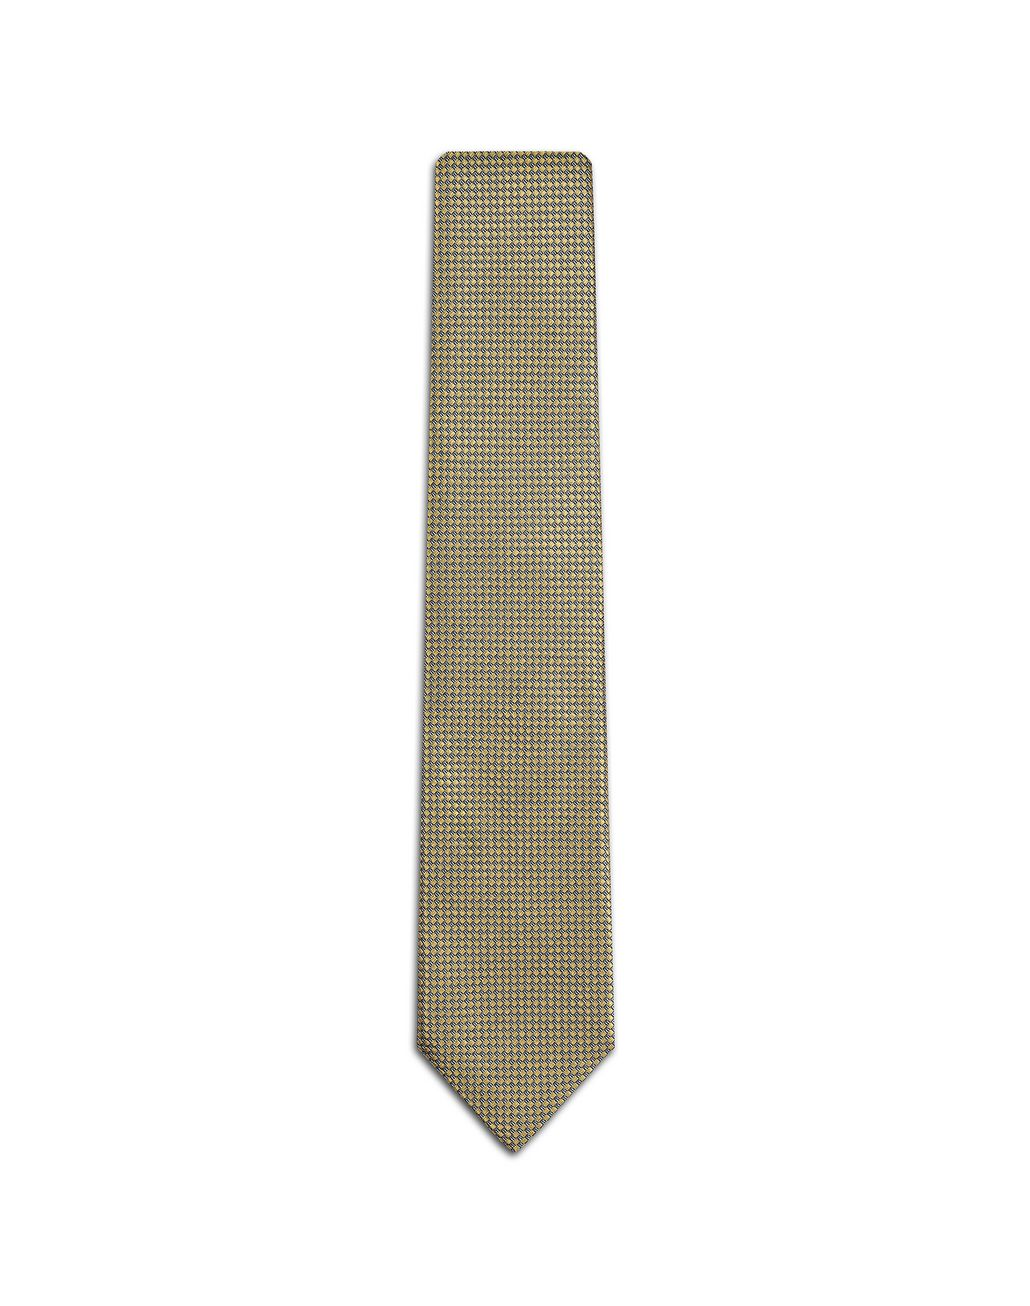 BRIONI Cravate à motif miniature jaune Cravate [*** pickupInStoreShippingNotGuaranteed_info ***] f